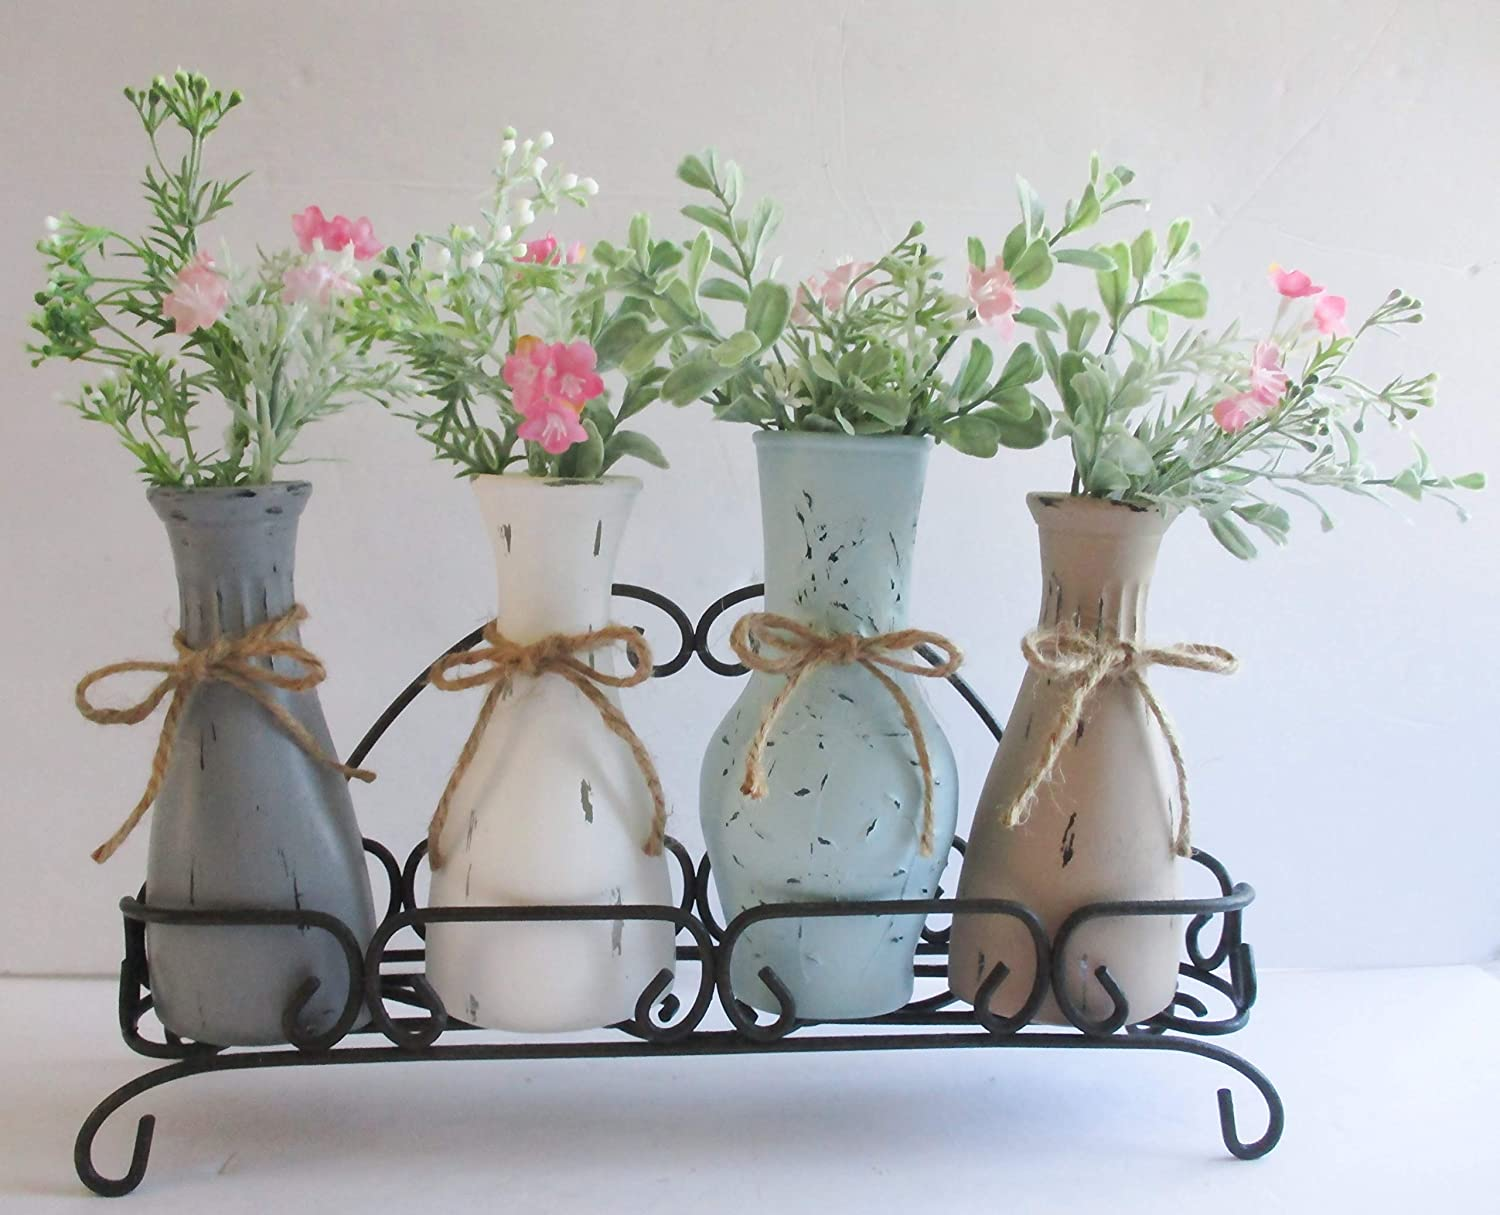 Flower Vases in Metal Max 73% OFF Caddy Farmhouse Chic Shabby Gla Painted Raleigh Mall